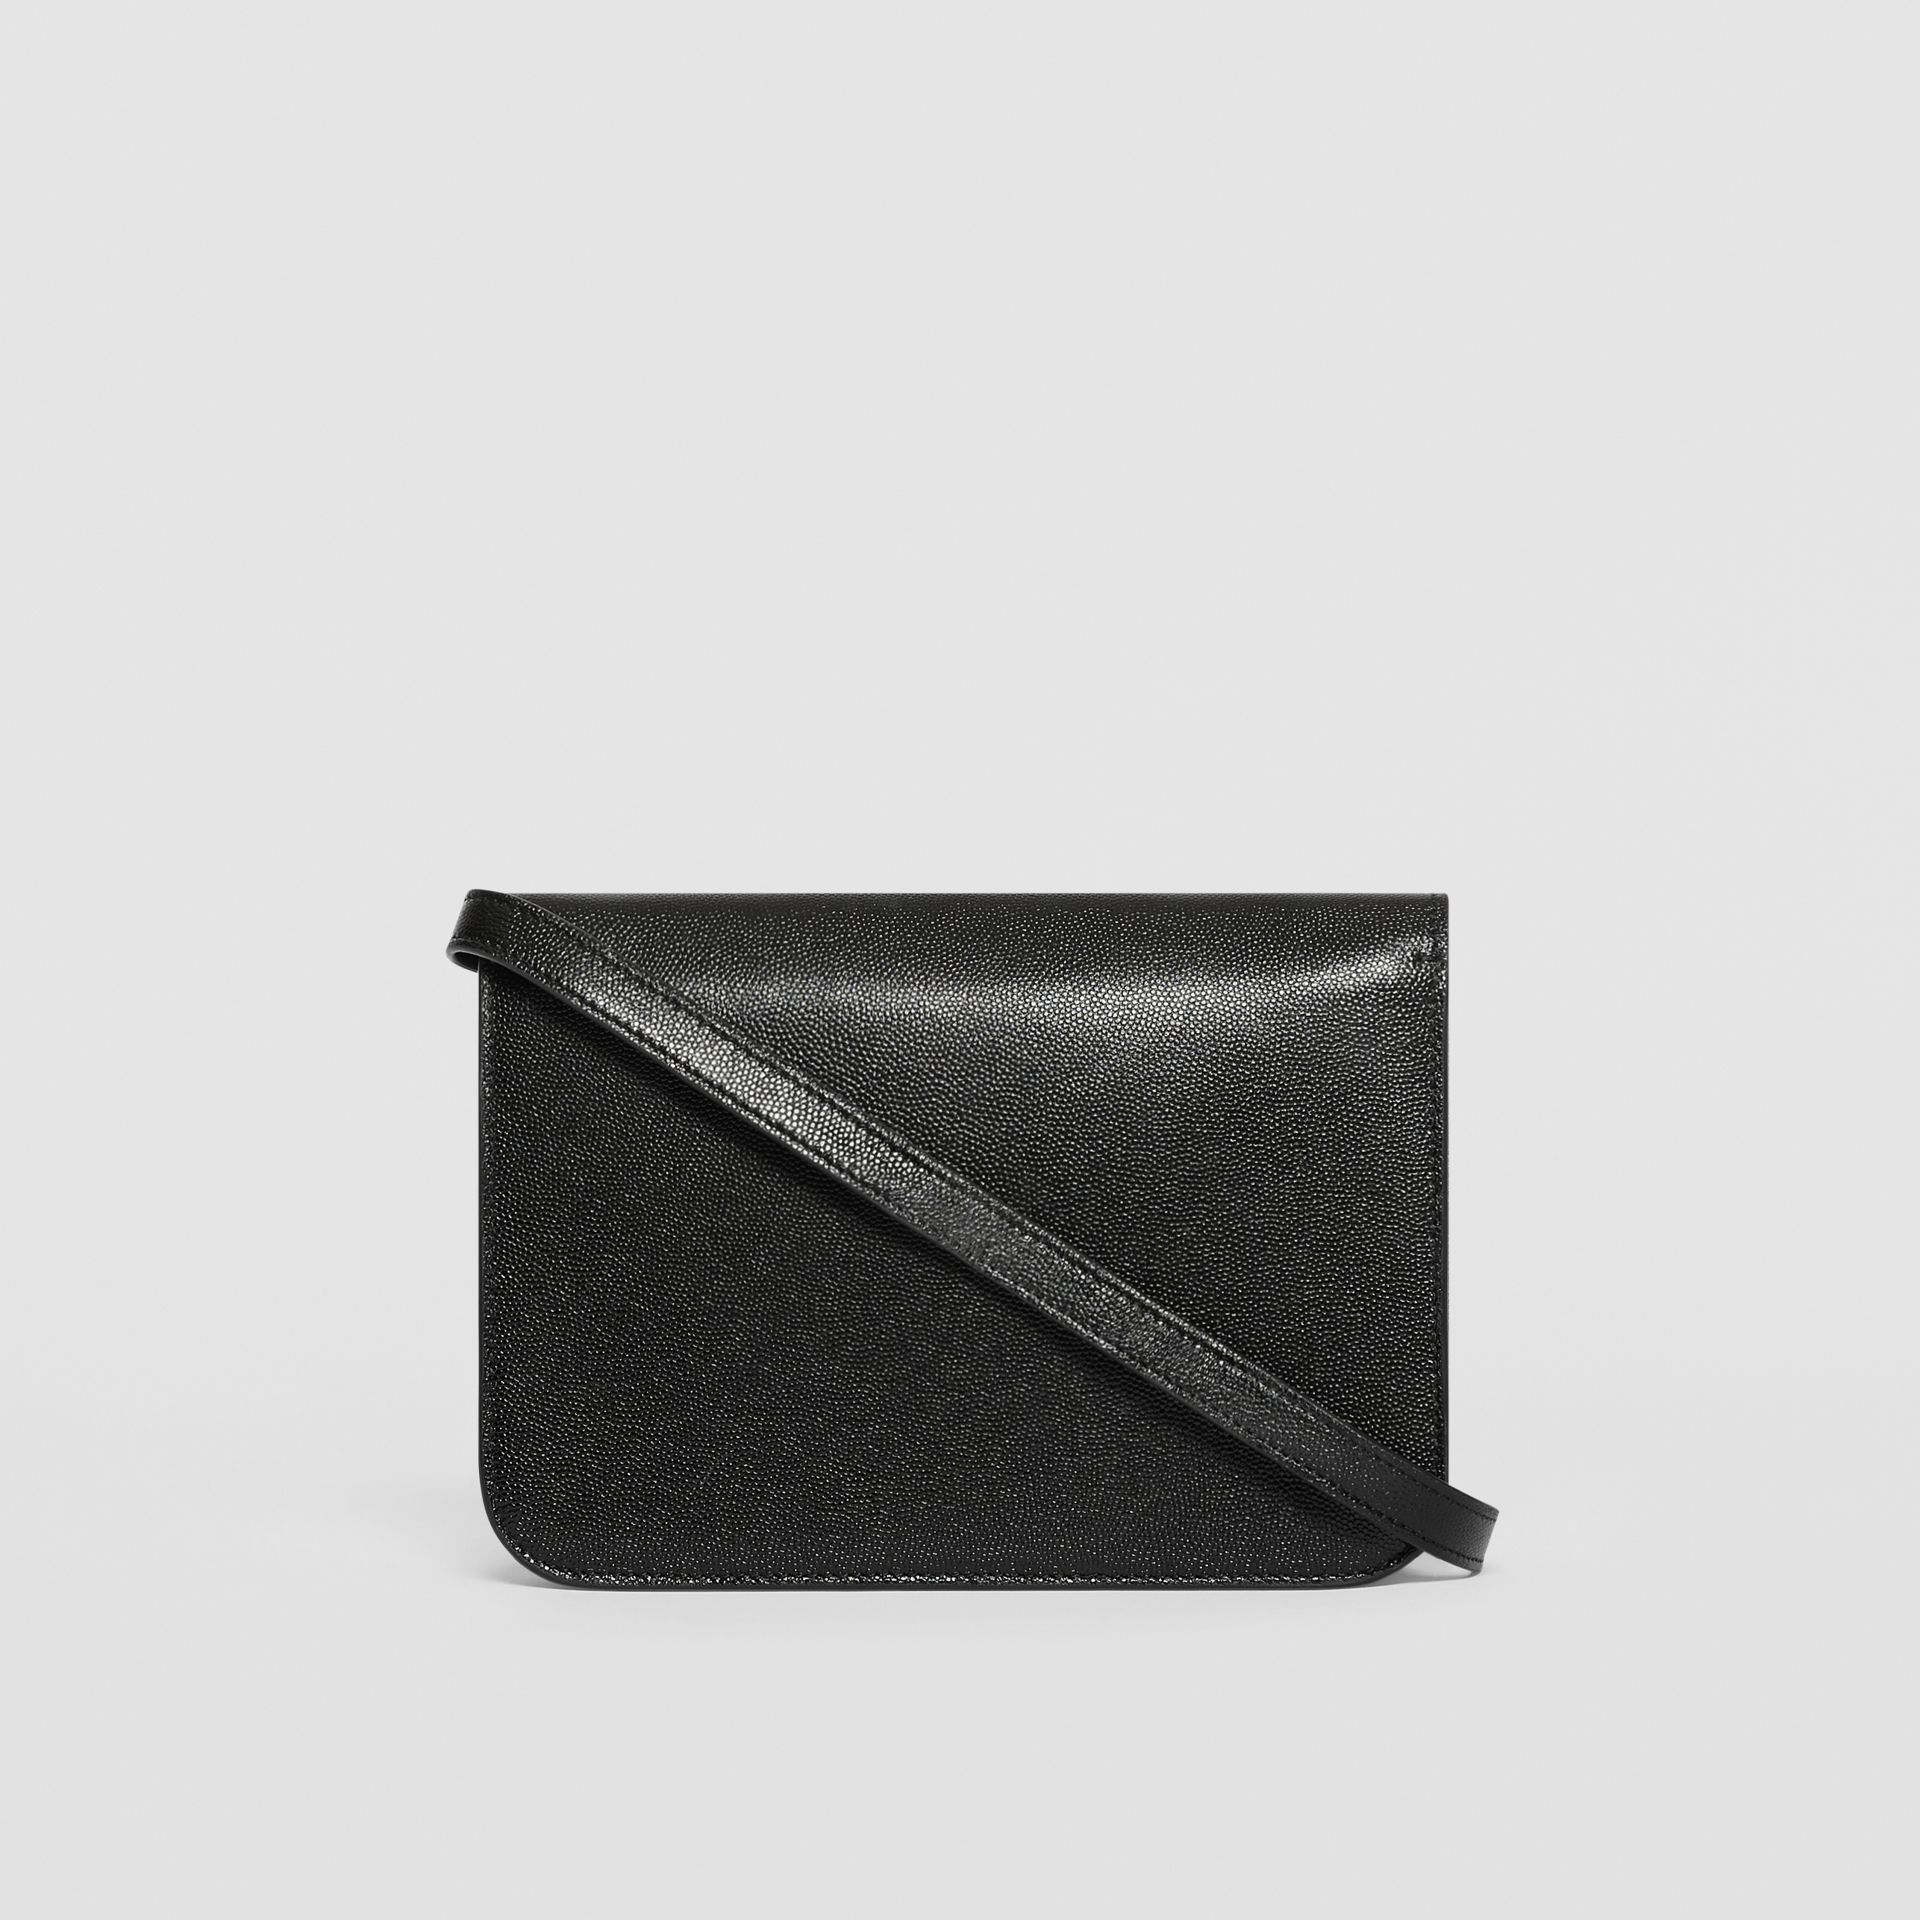 Small Grainy Leather TB Bag in Black - Women | Burberry Canada - gallery image 7